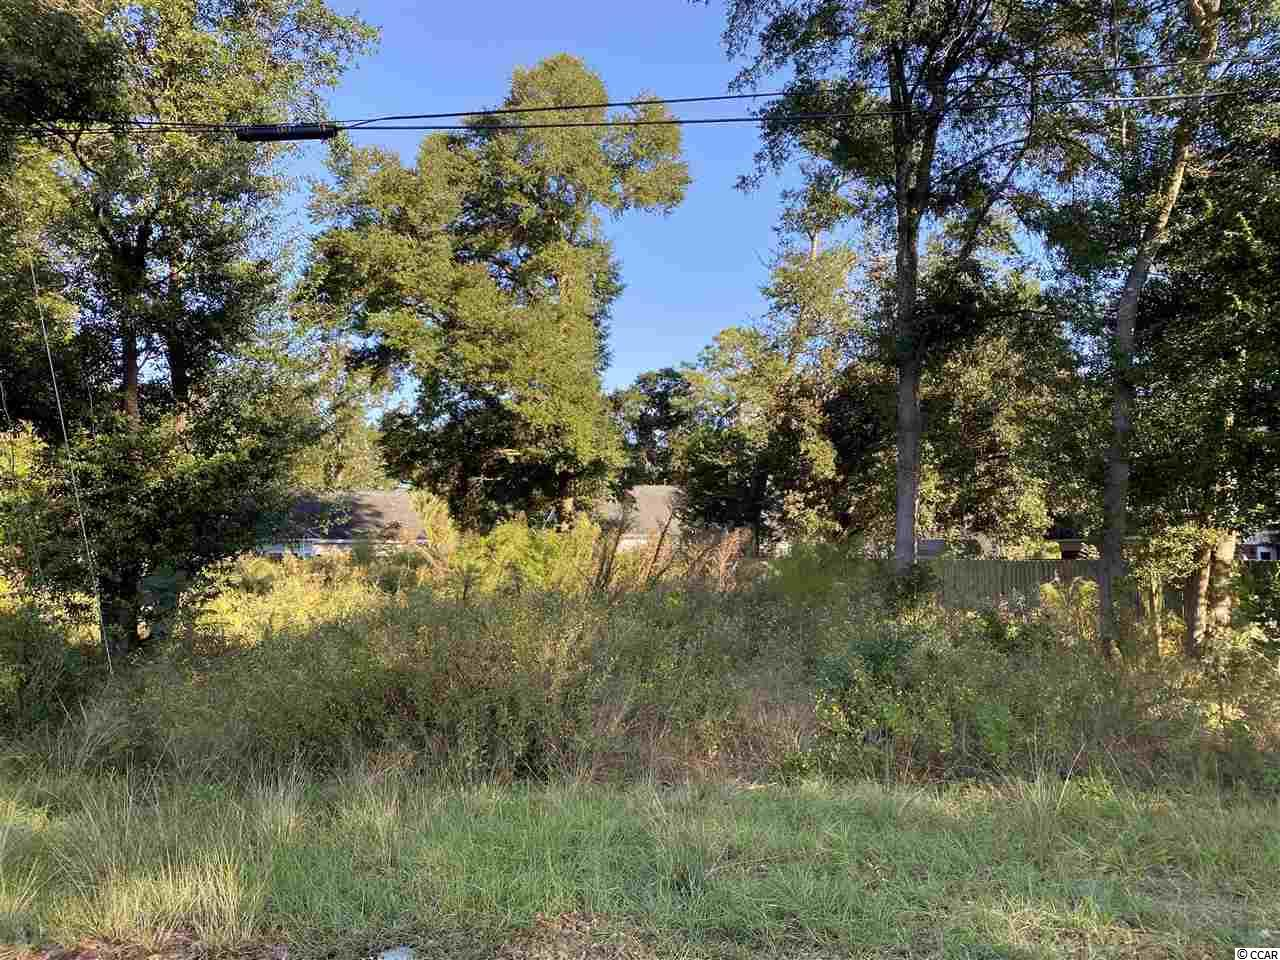 Your dream home is ready to be built in this incredible location near the Little River waterfront. Walk to restaurants, festivals, and watch the beautiful boats pass by. The ICW is a stone's throw away and this 1/4 acre lot is free from restrictions of a HOA!